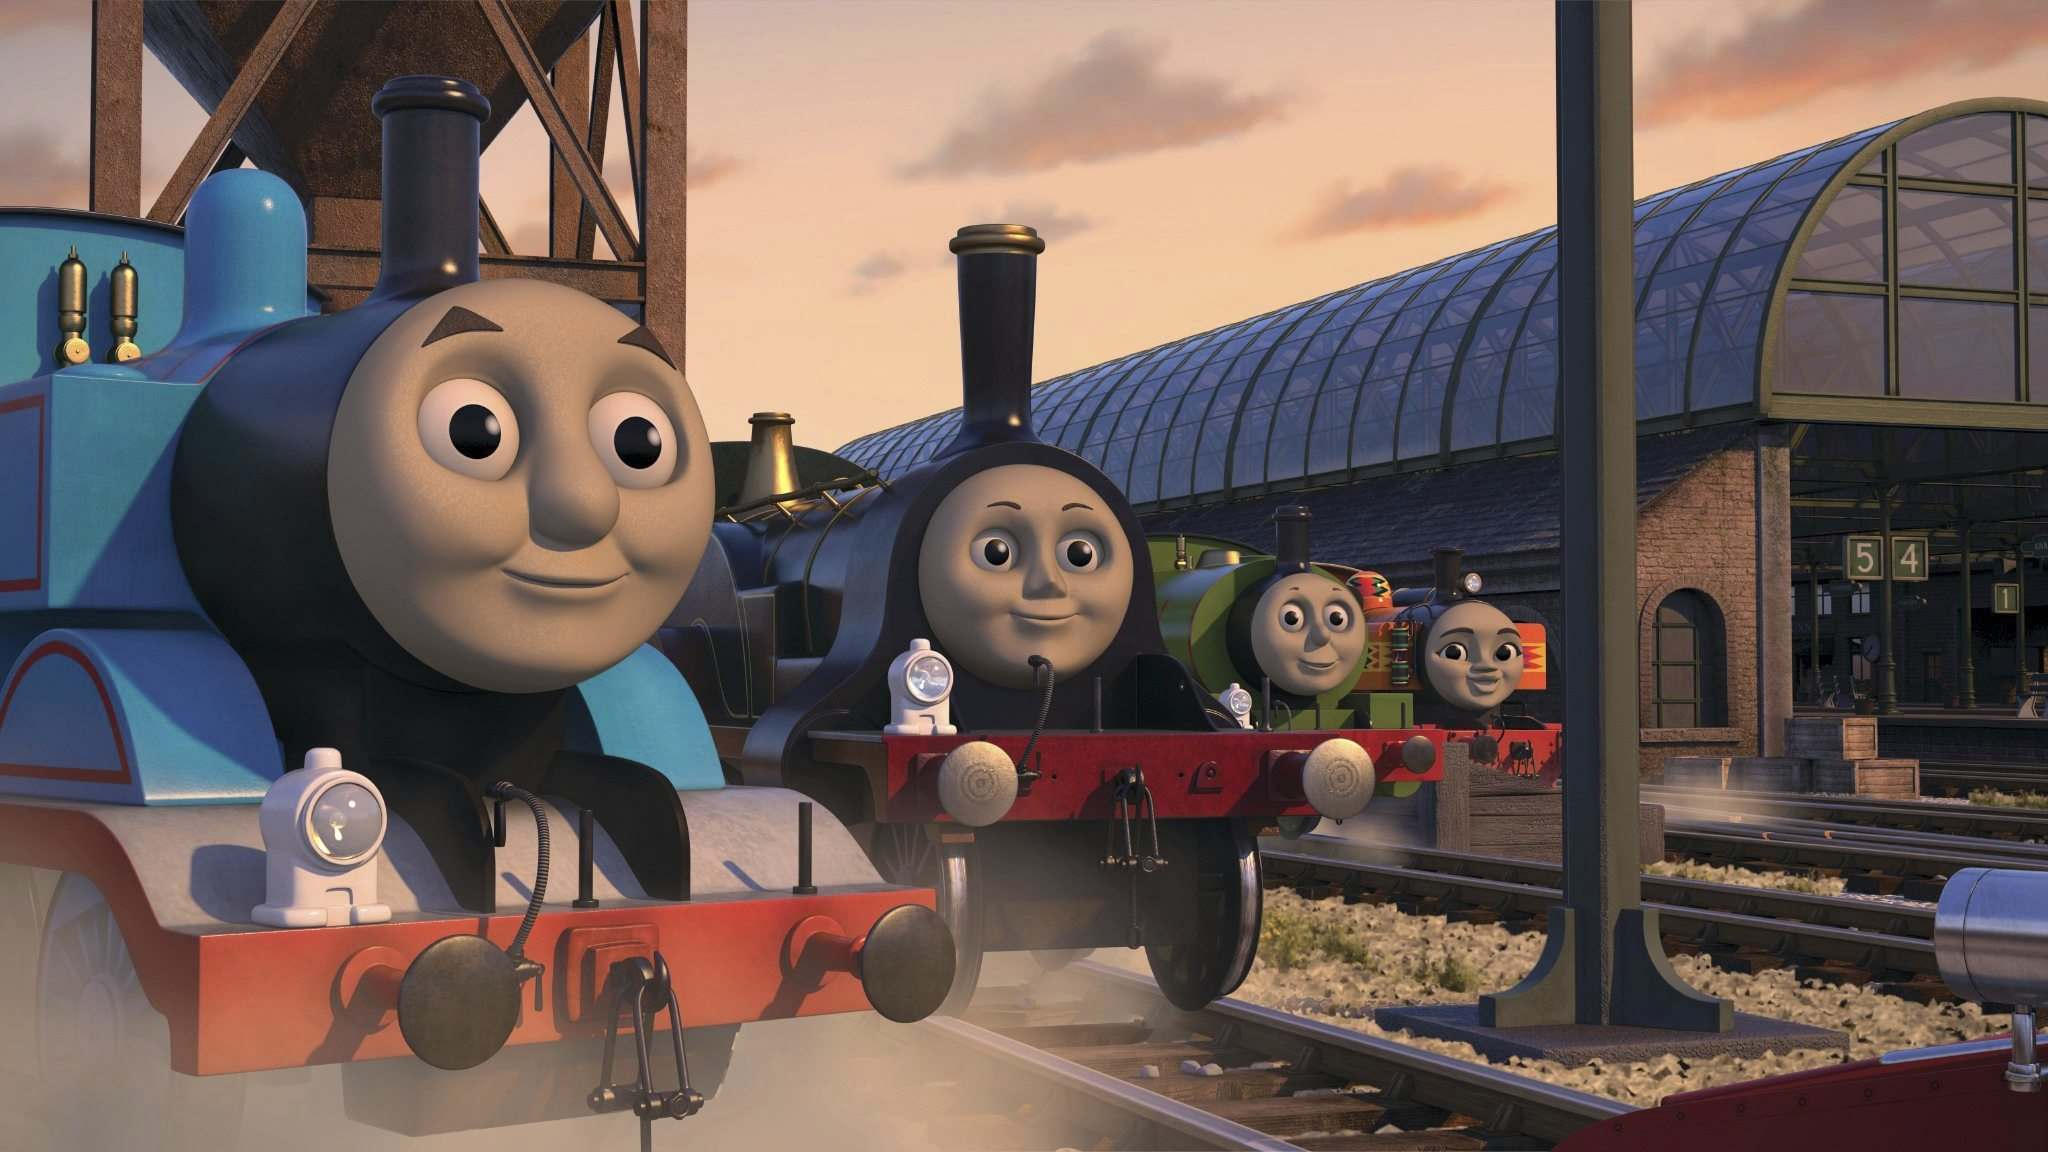 Mattel</p><p>Mattel hopes an appetite for inclusive characters and progressive storylines will make Thomas the Tank Engine more appealing to modern children and their parents.</p></p>